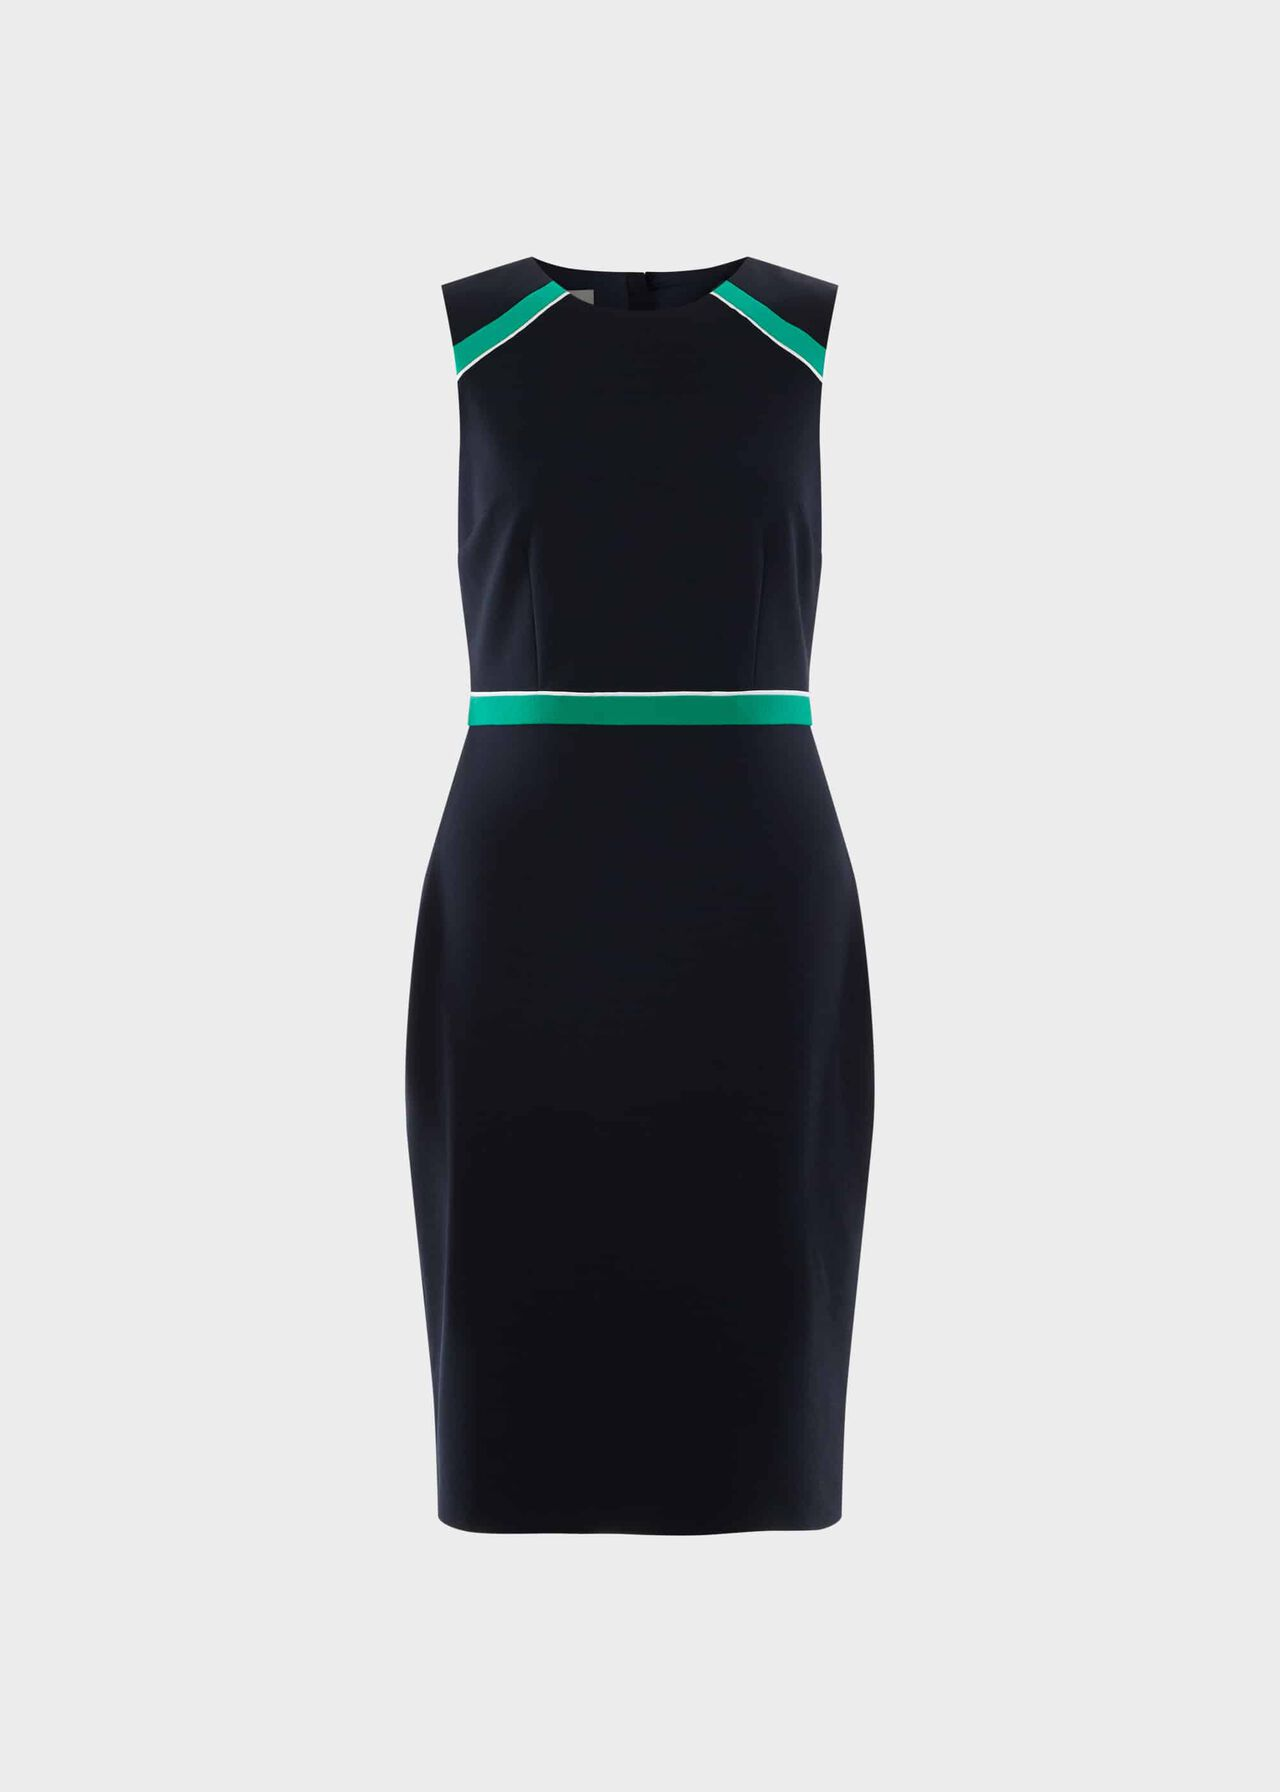 Nala Dress Navy Green Ivry